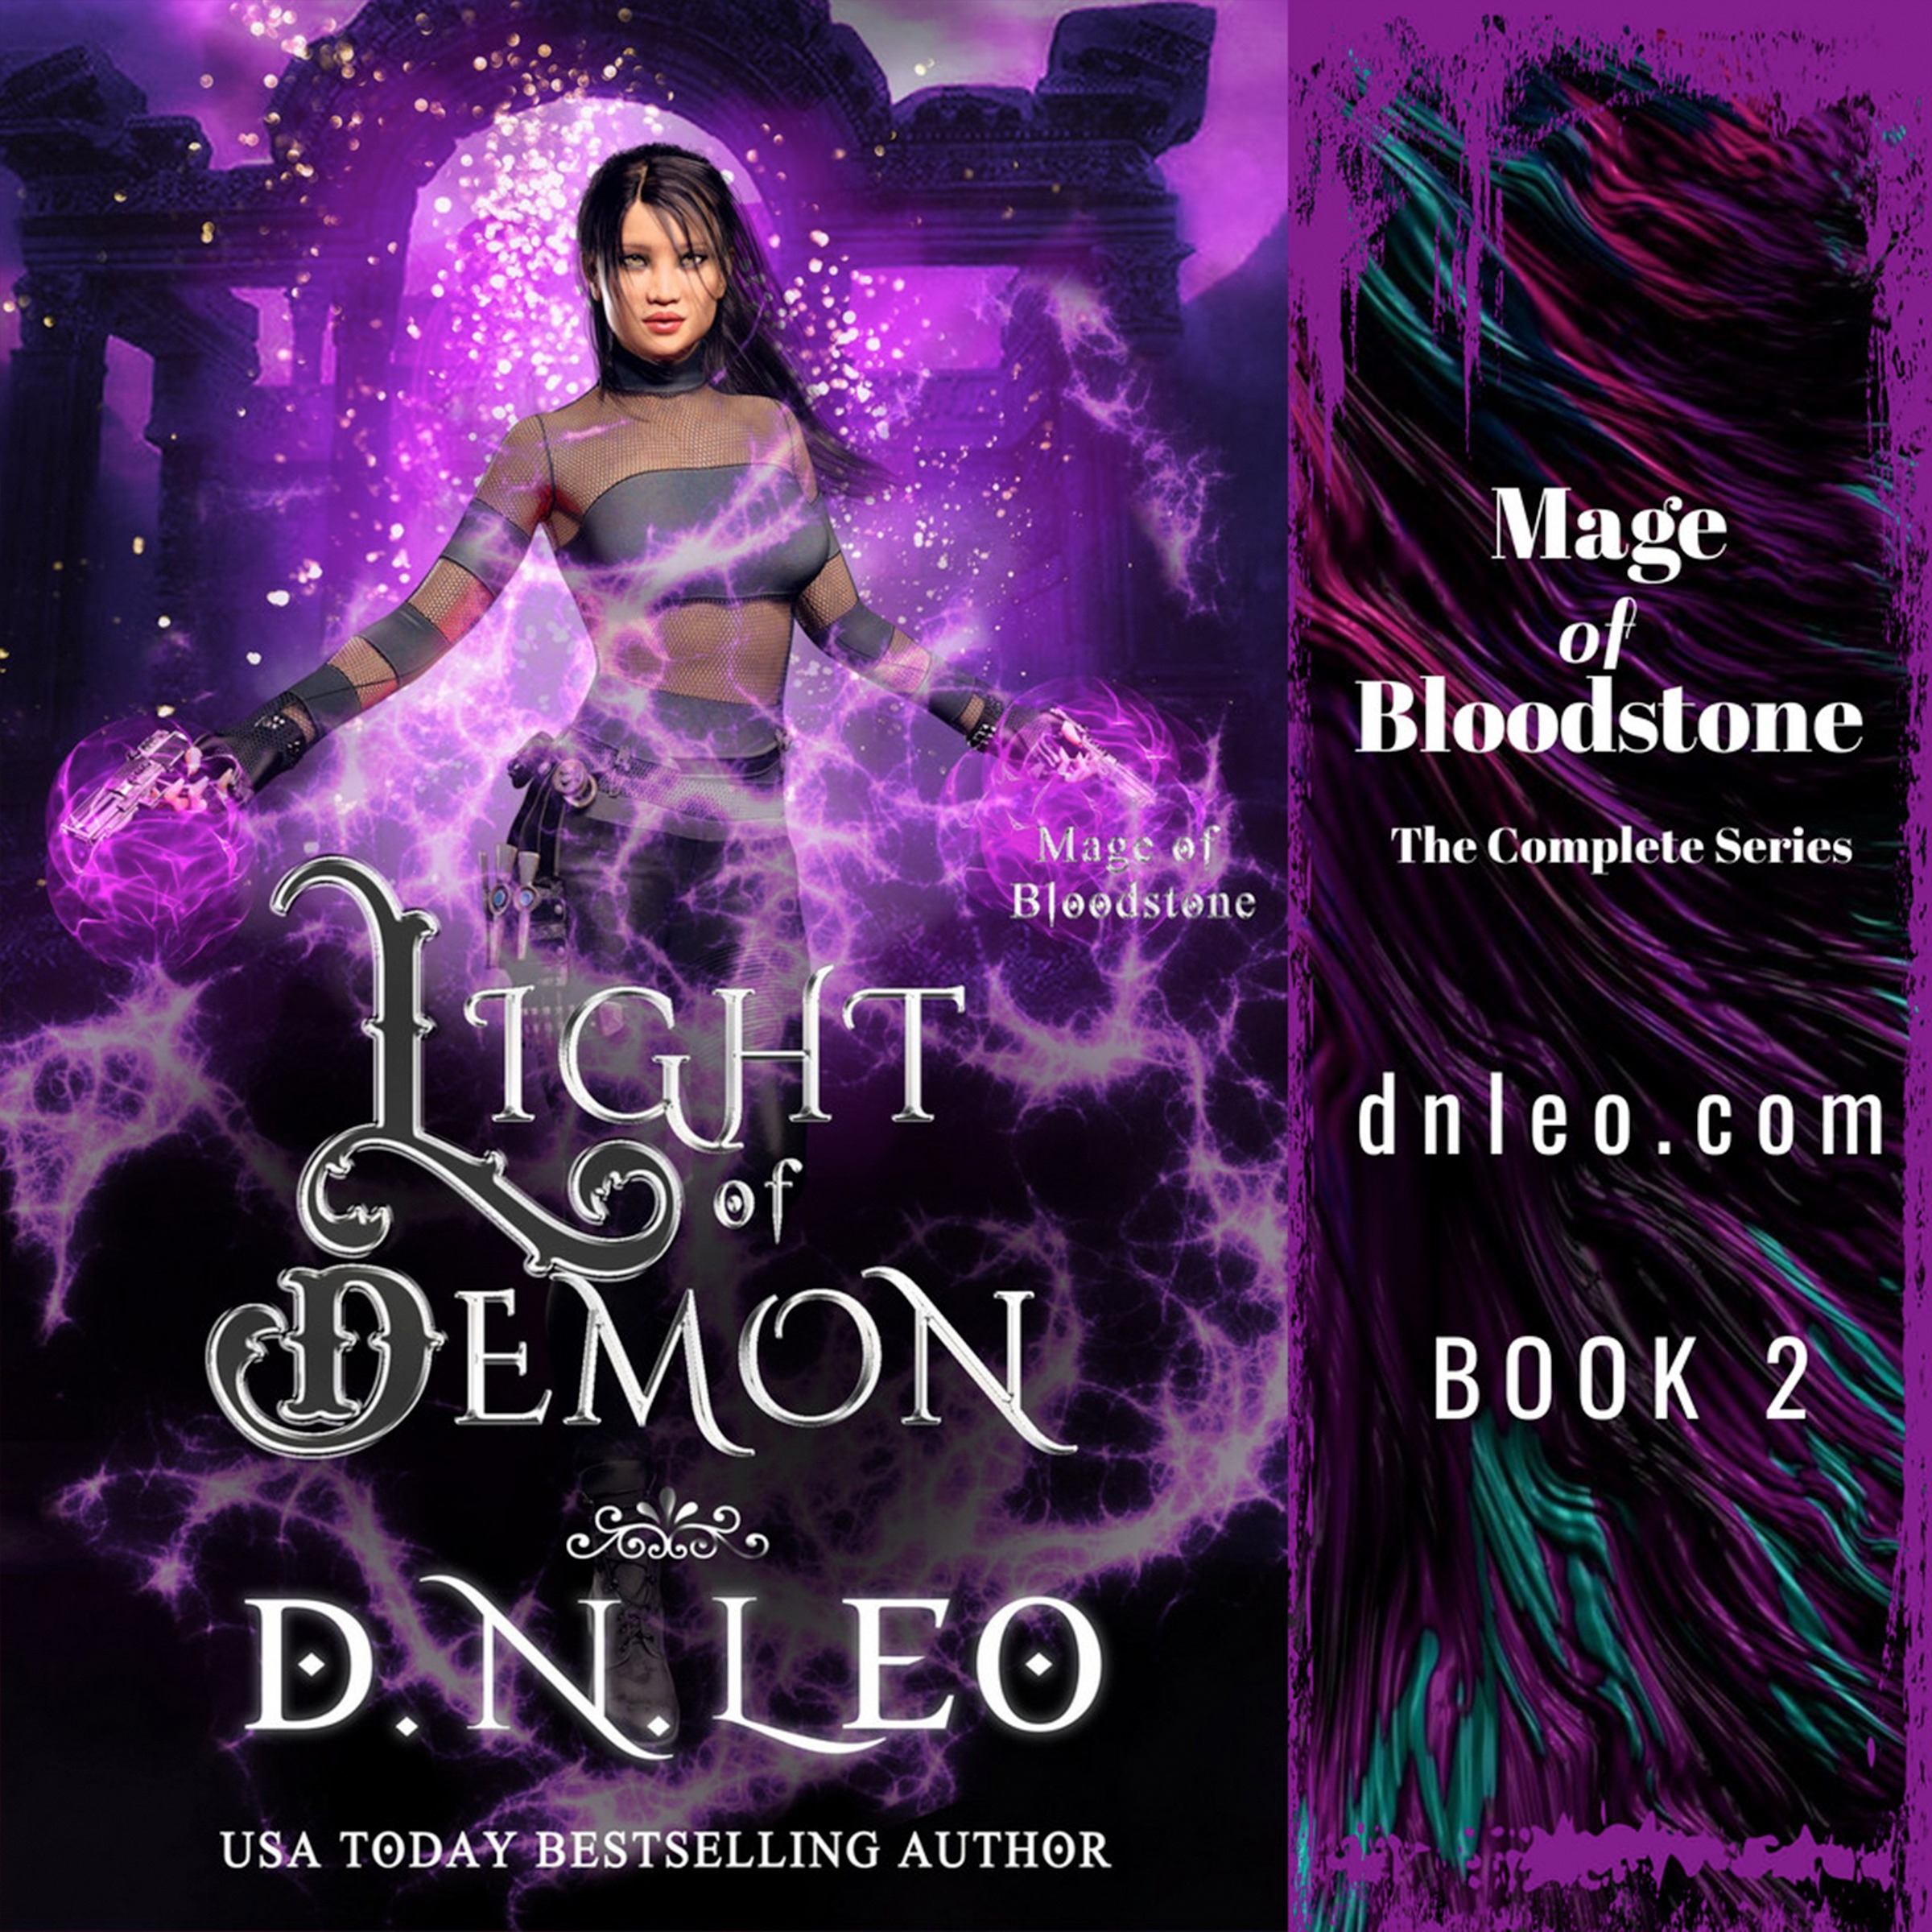 Light of Demon - Mage of Bloodstone - Book 2